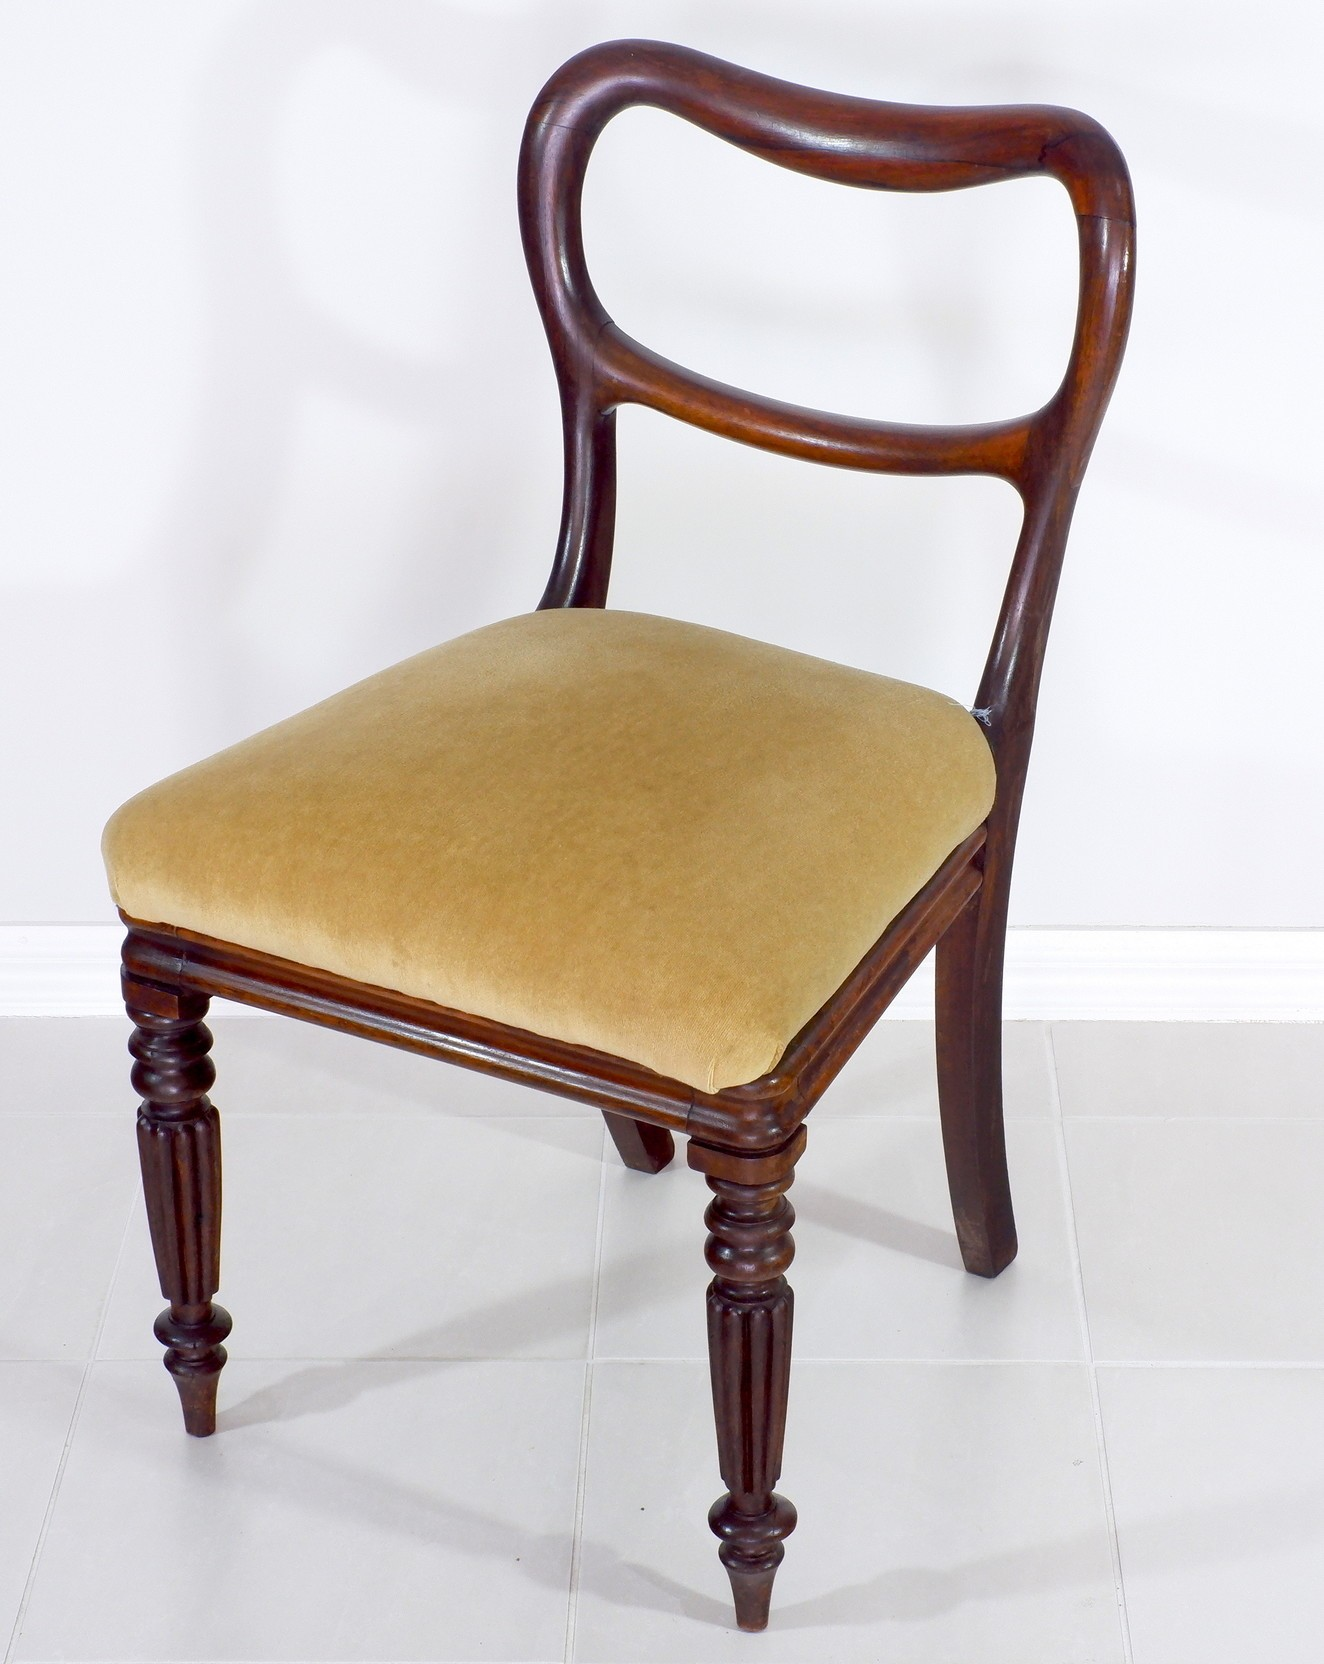 'Early Victorian Brazilian Rosewood Balloon Back Chair Circa 1840'